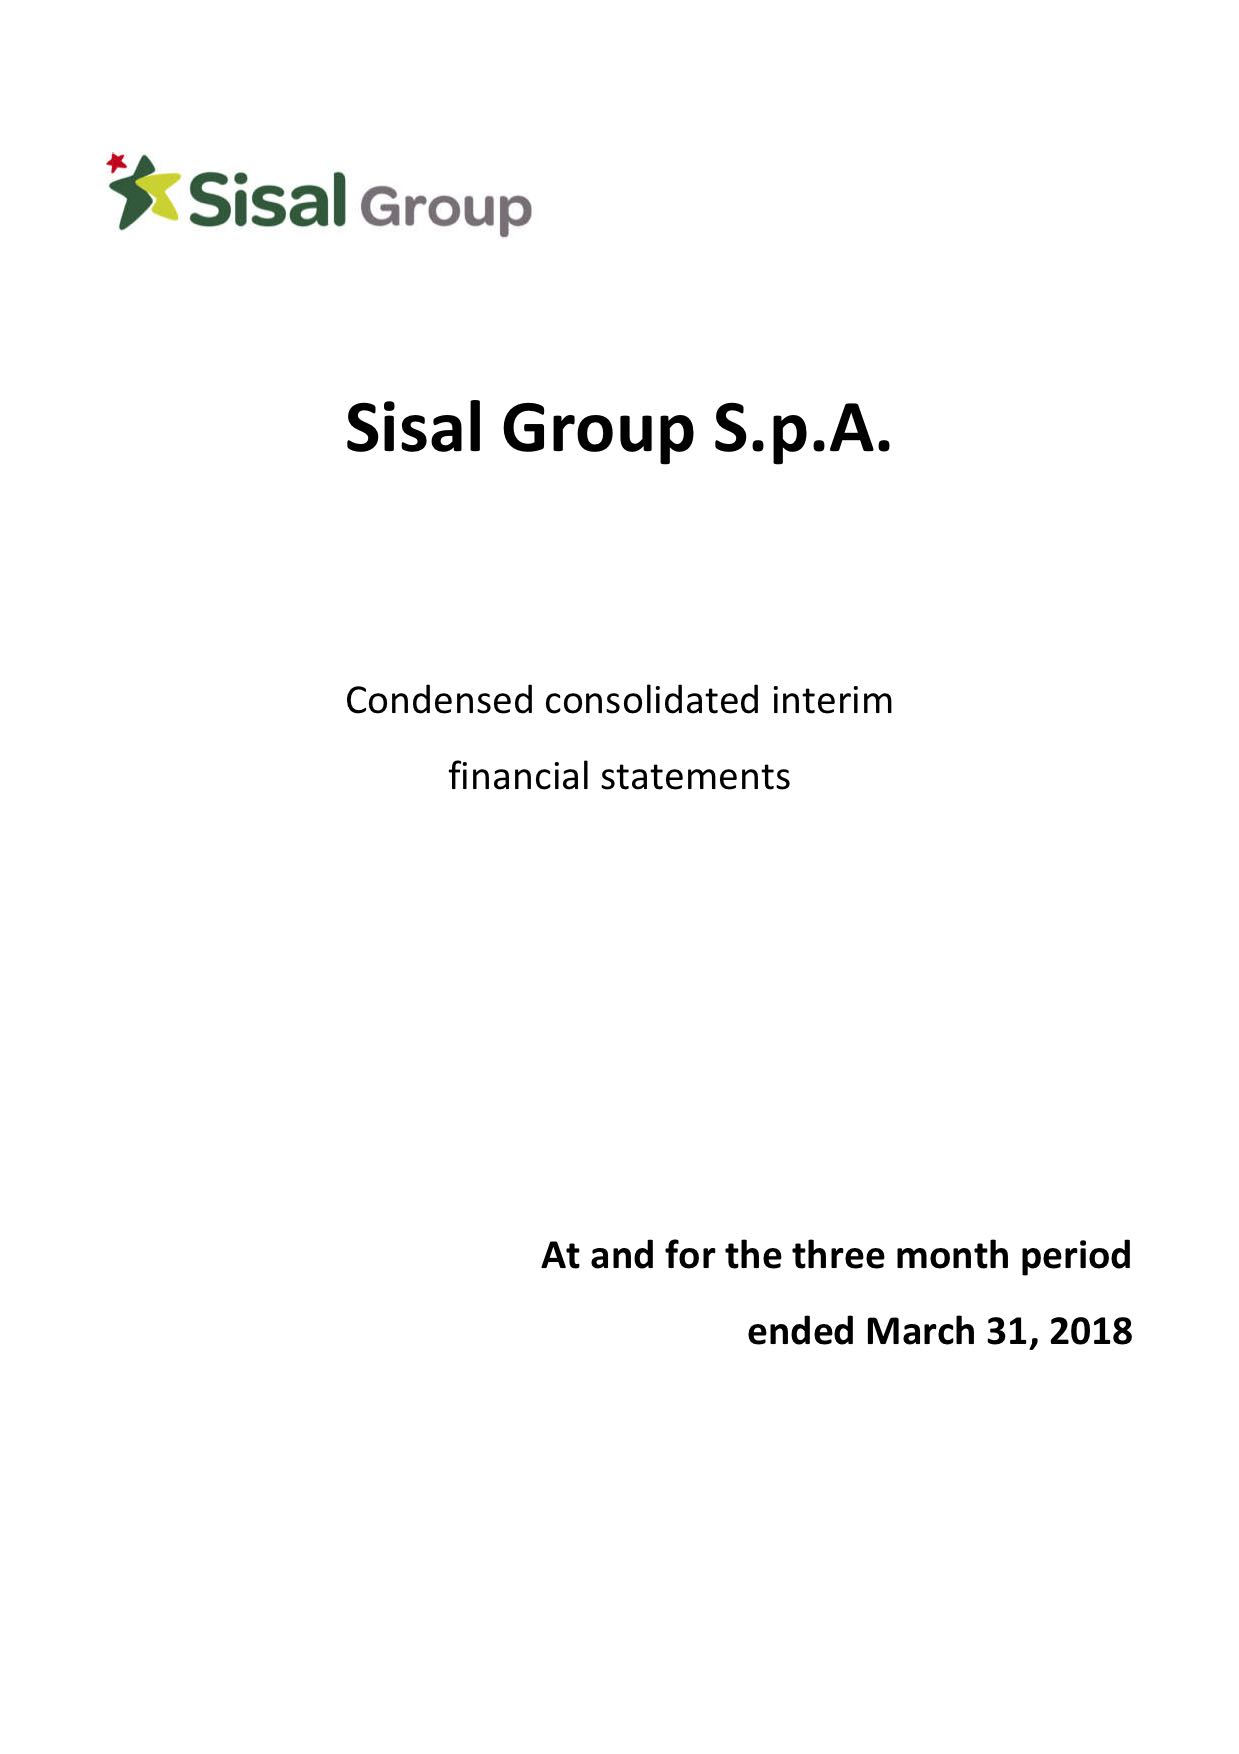 Sisal Group Consolidated Financial Statement March 31st, 2018